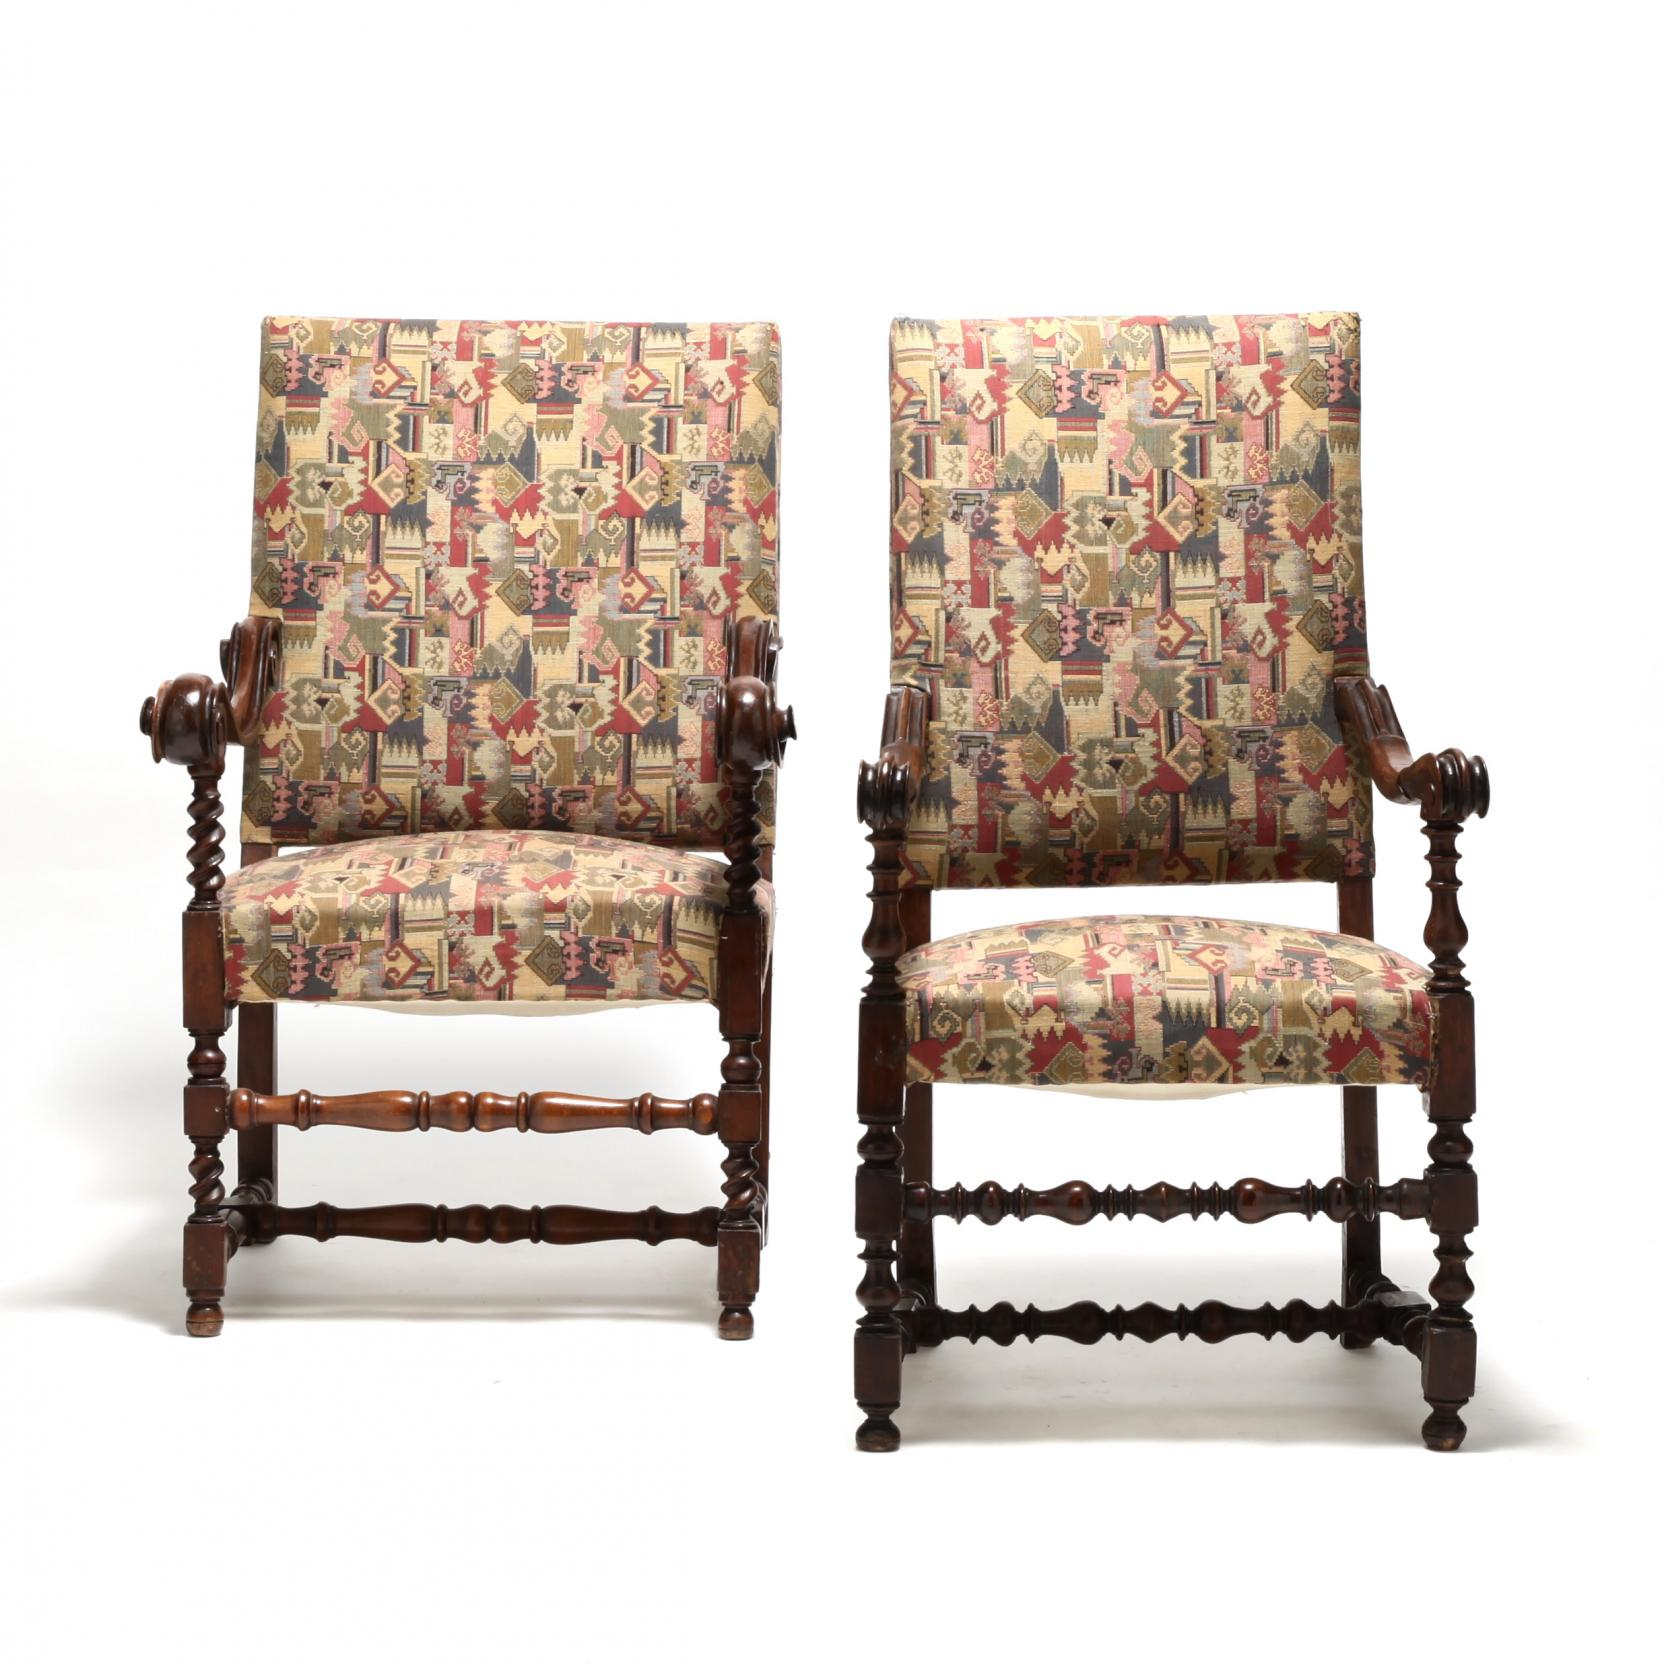 two-spanish-baroque-great-chairs